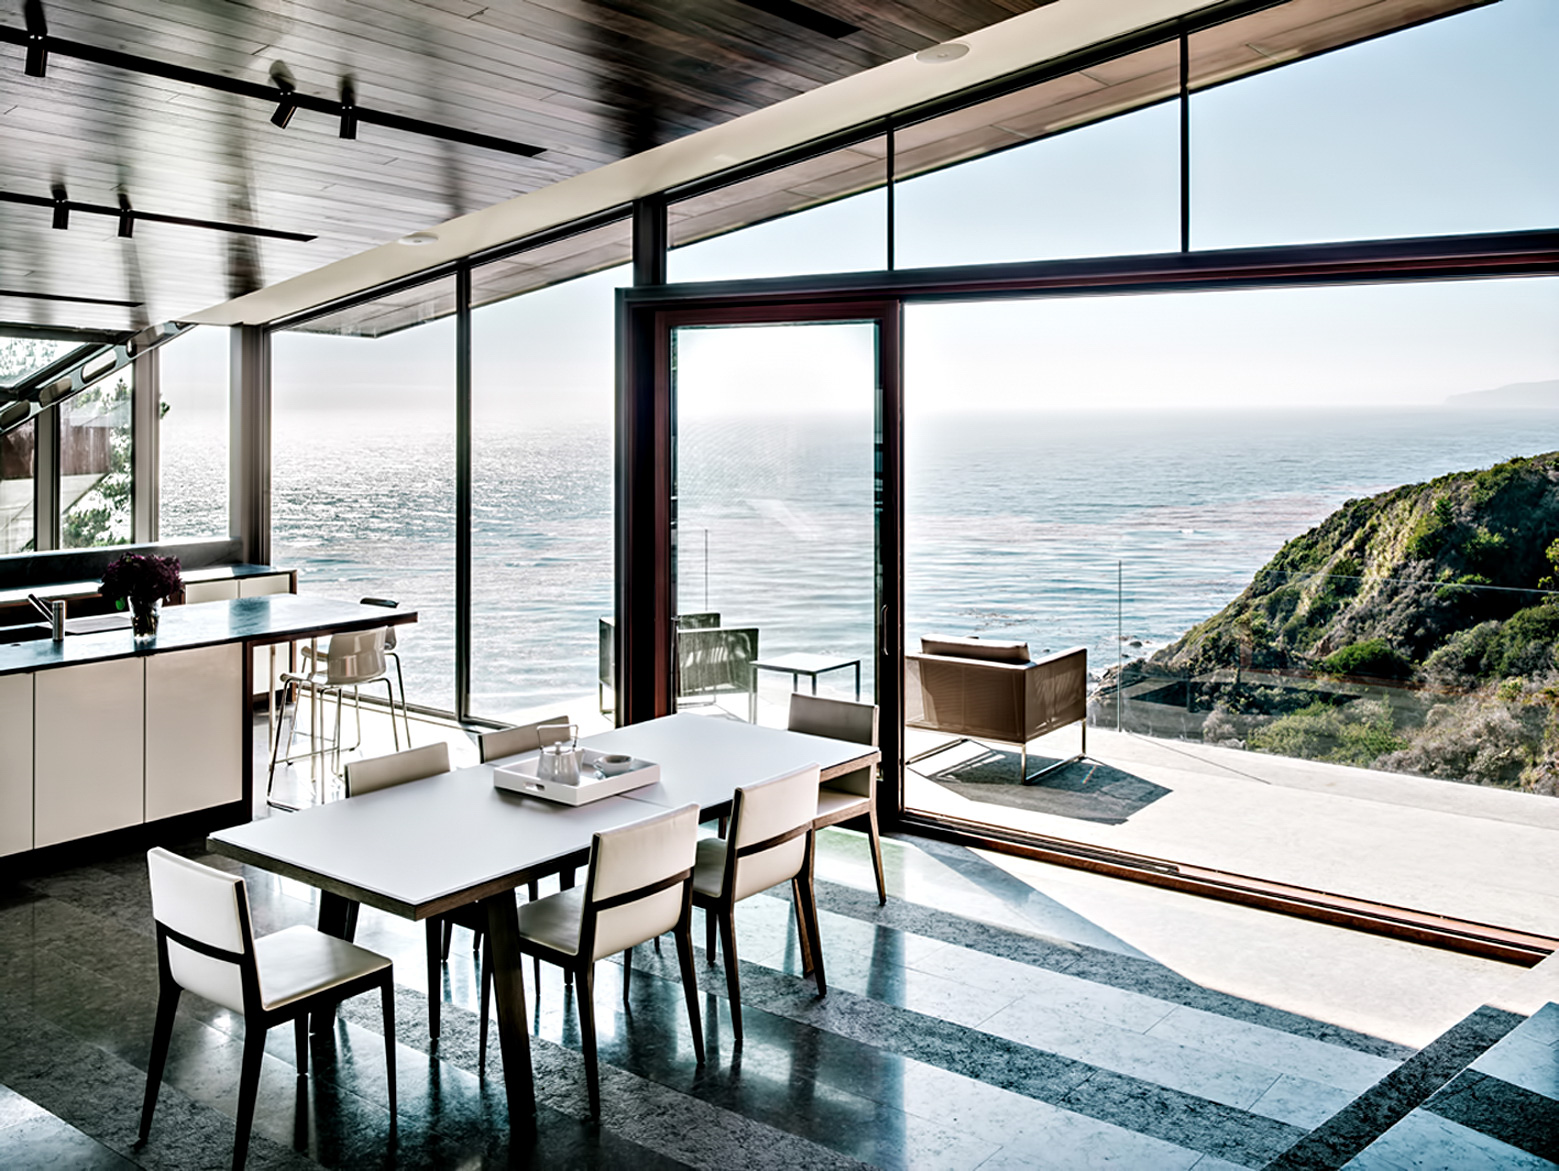 18 – Fall House Luxury Residence – Cabrillo Hwy, Big Sur, CA, USA